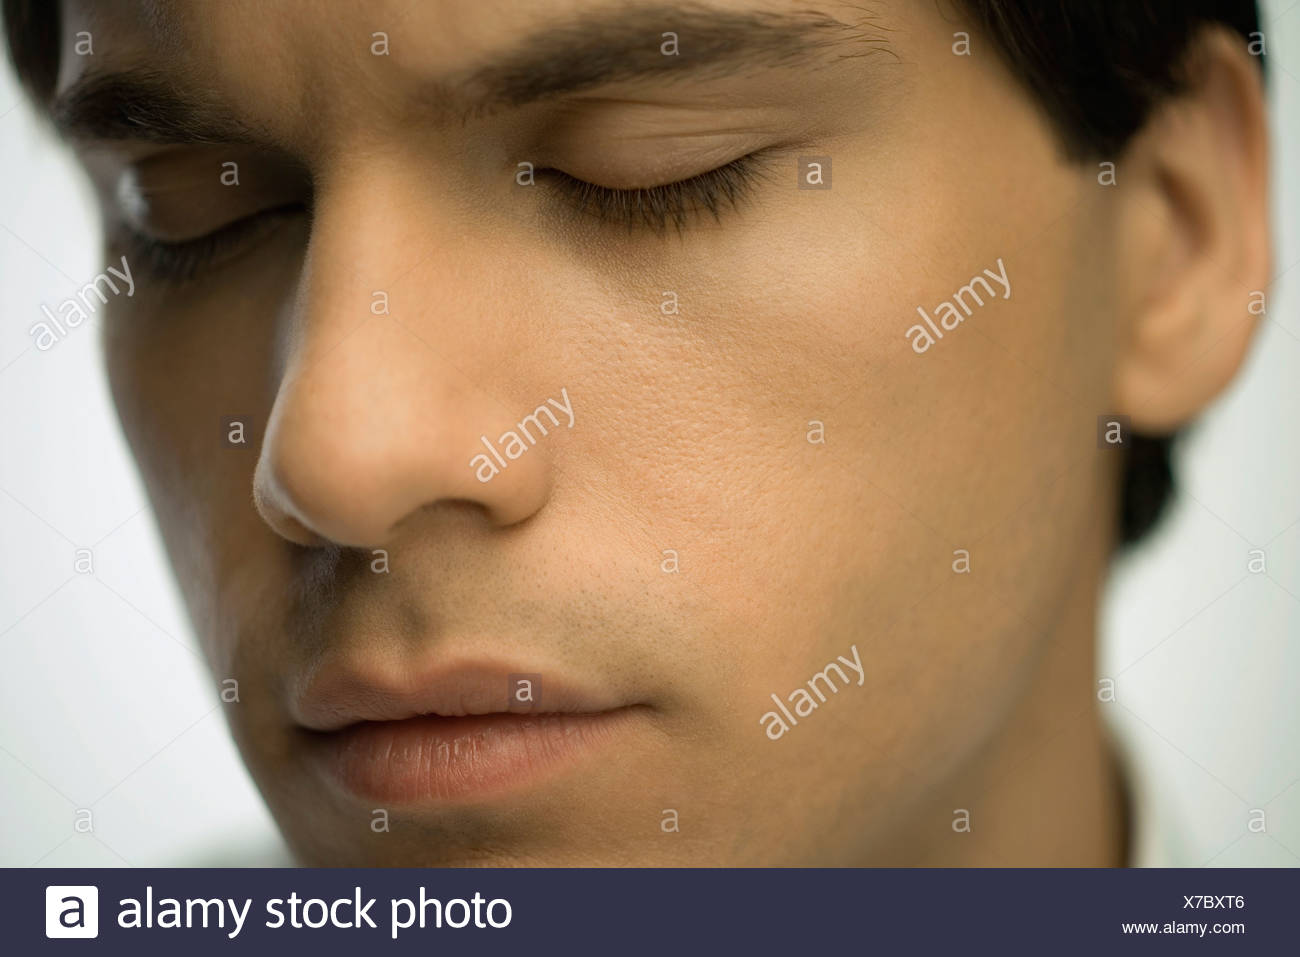 Young man furrowing brow, eyes closed, portrait - Stock Image